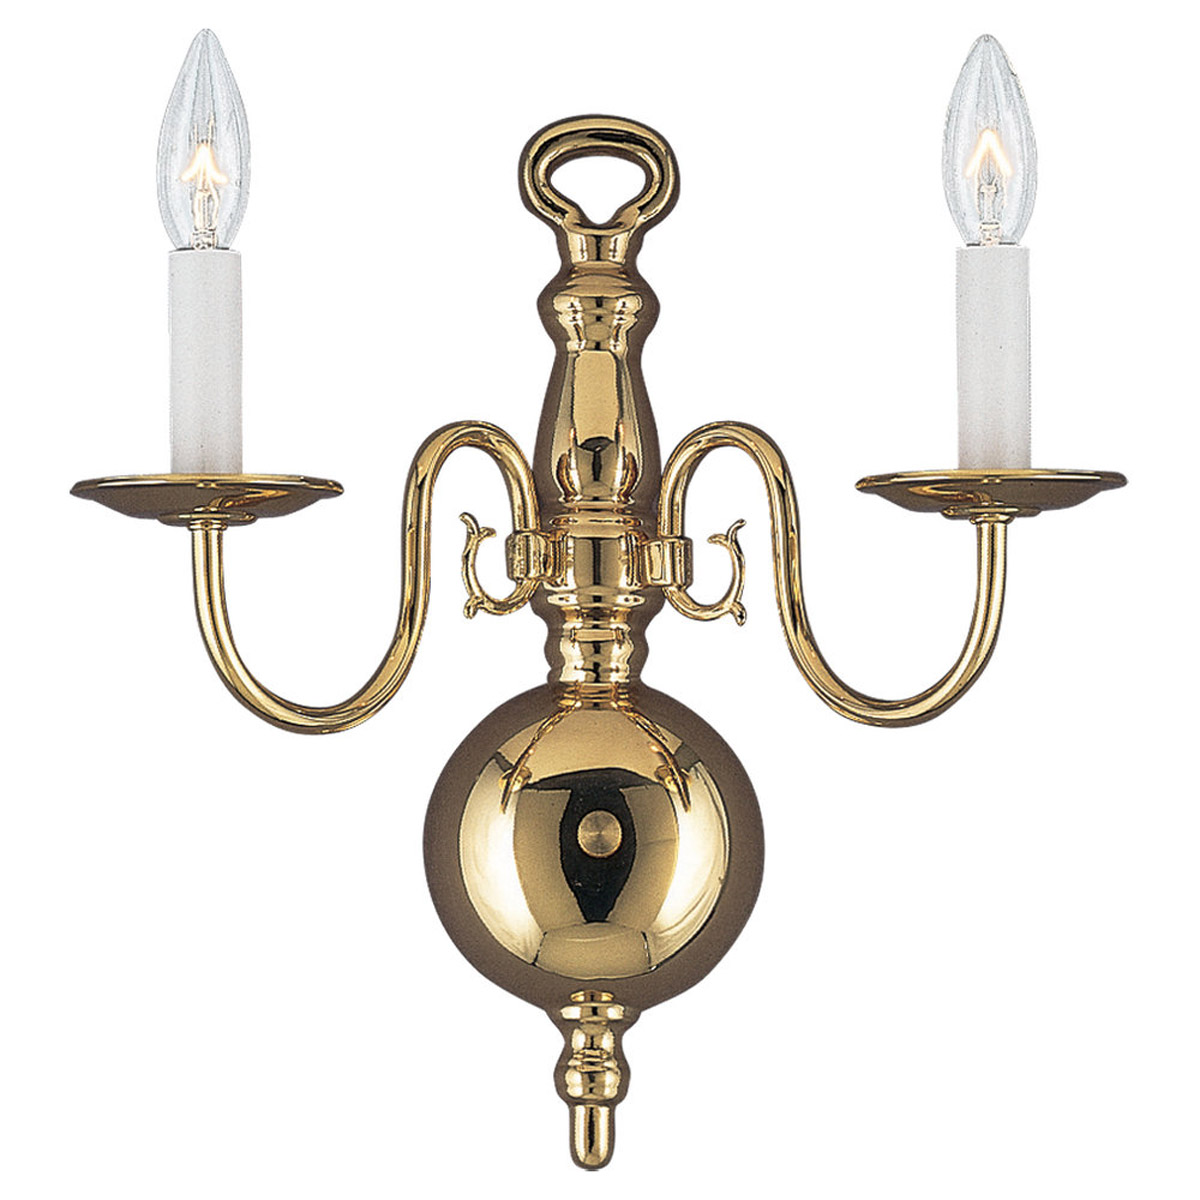 Sea Gull Lighting Traditional 2 Light Bath Vanity in Polished Brass 4179-02 photo